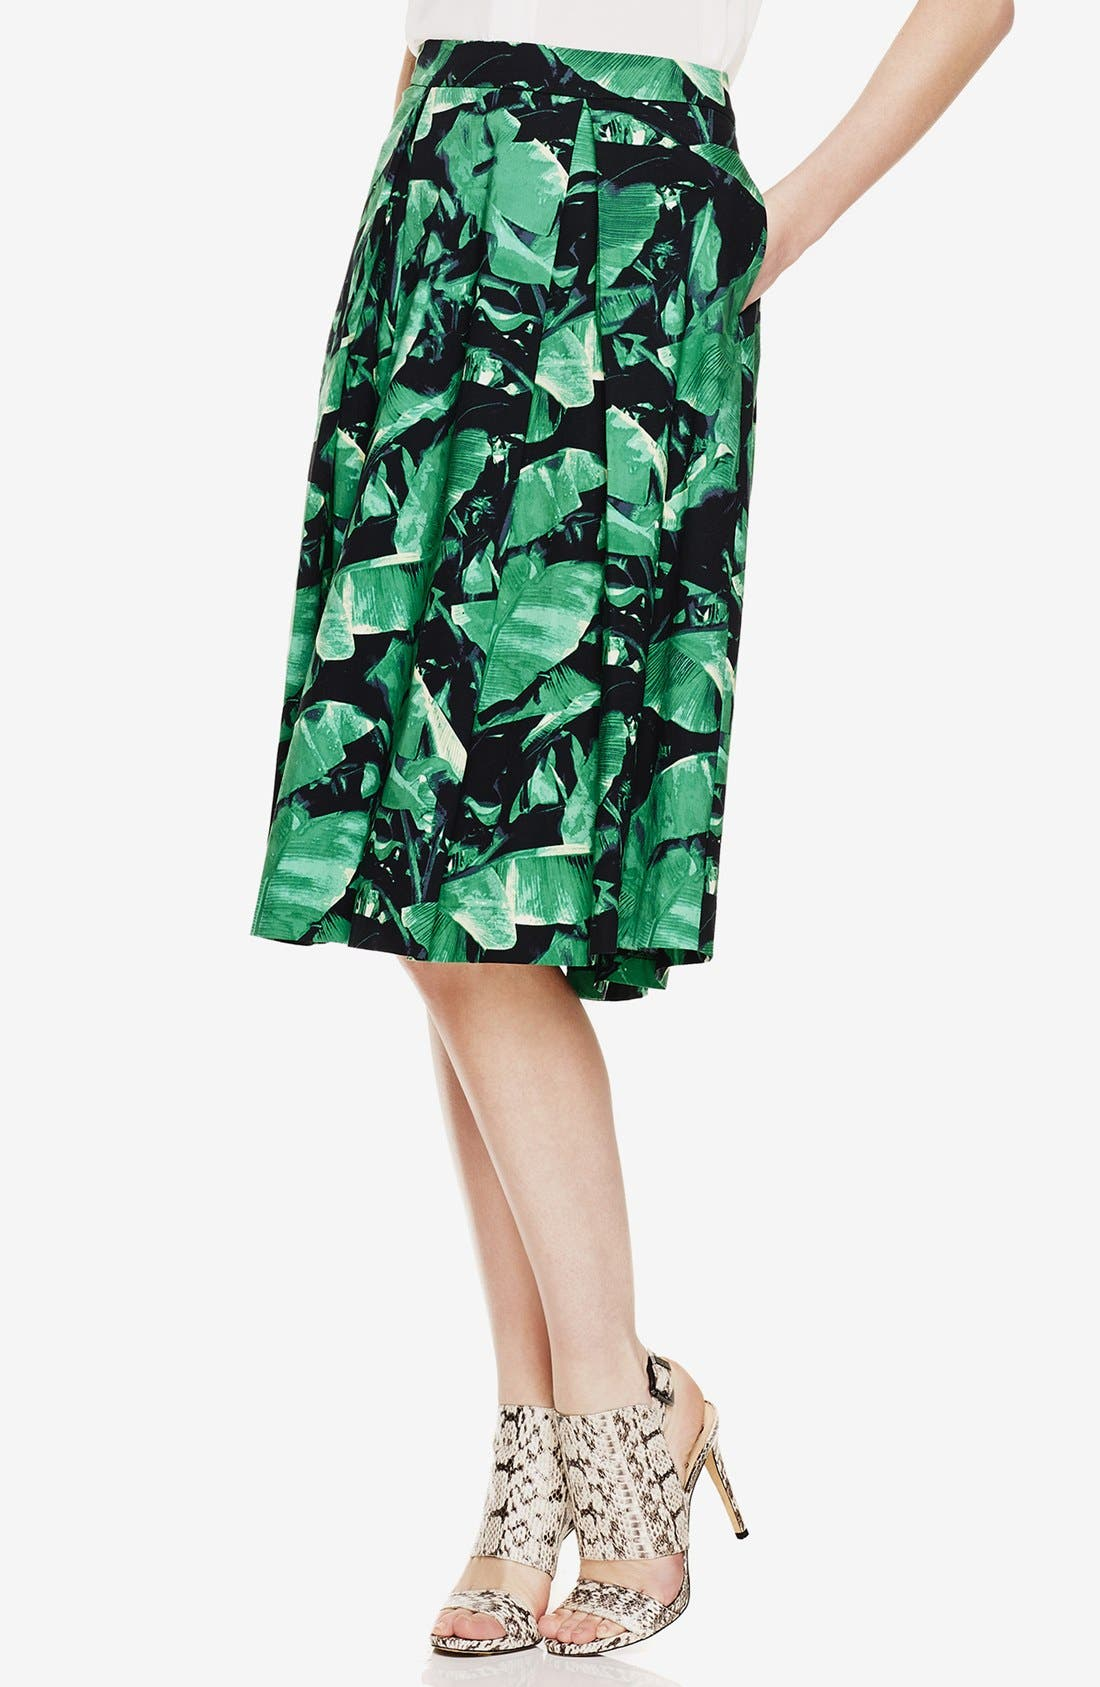 Alternate Image 1 Selected - Vince Camuto 'Island Palm' Pleat Midi Skirt